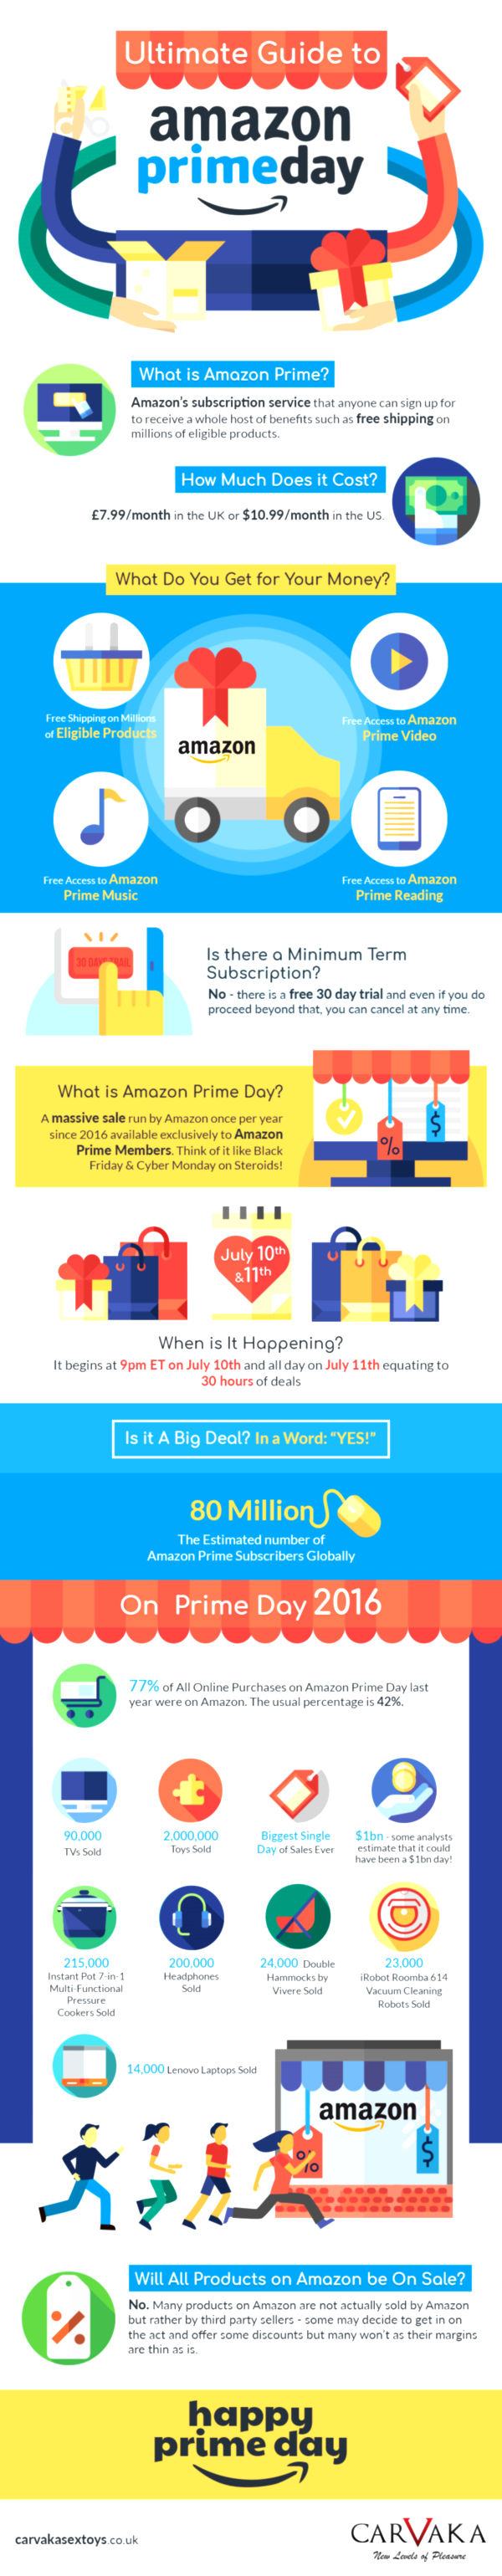 Will Amazon Prime Day 2017 hit $1bn in Sales in a Single Day? Get the Answer here! 1